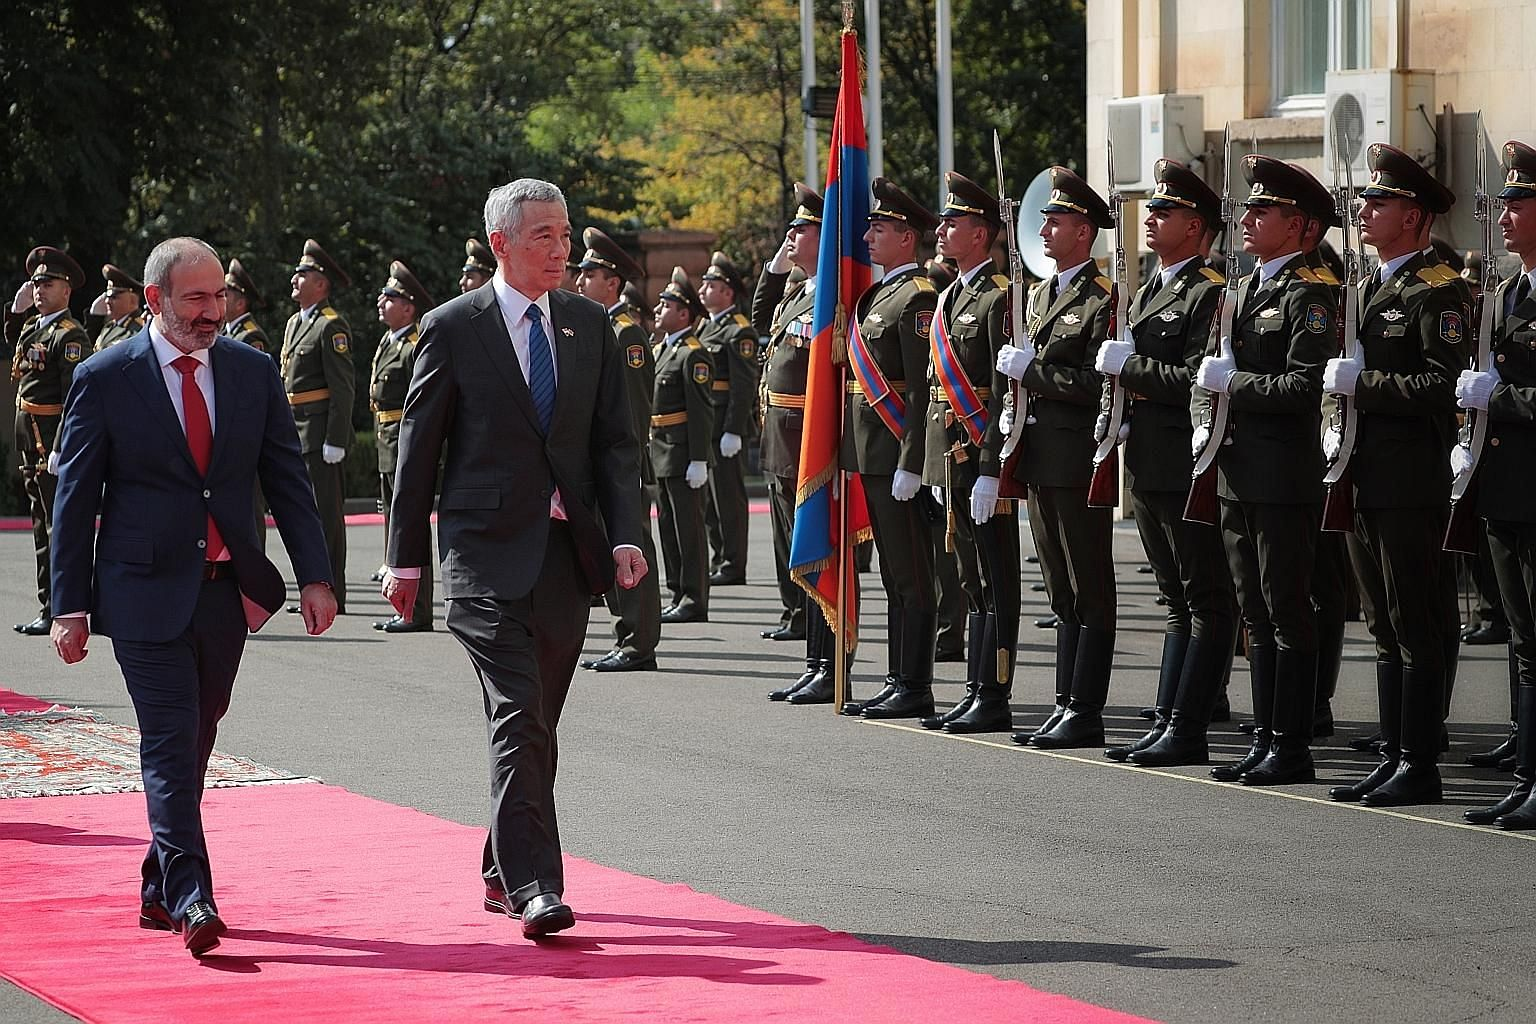 Prime Minister Lee Hsien Loong and his Armenian counterpart Nikol Pashinyan reviewing the guard of honour during a welcome ceremony at the Governmental Residence in the Armenian capital Yerevan yesterday. PM Lee said both Singapore and Armenia are sm